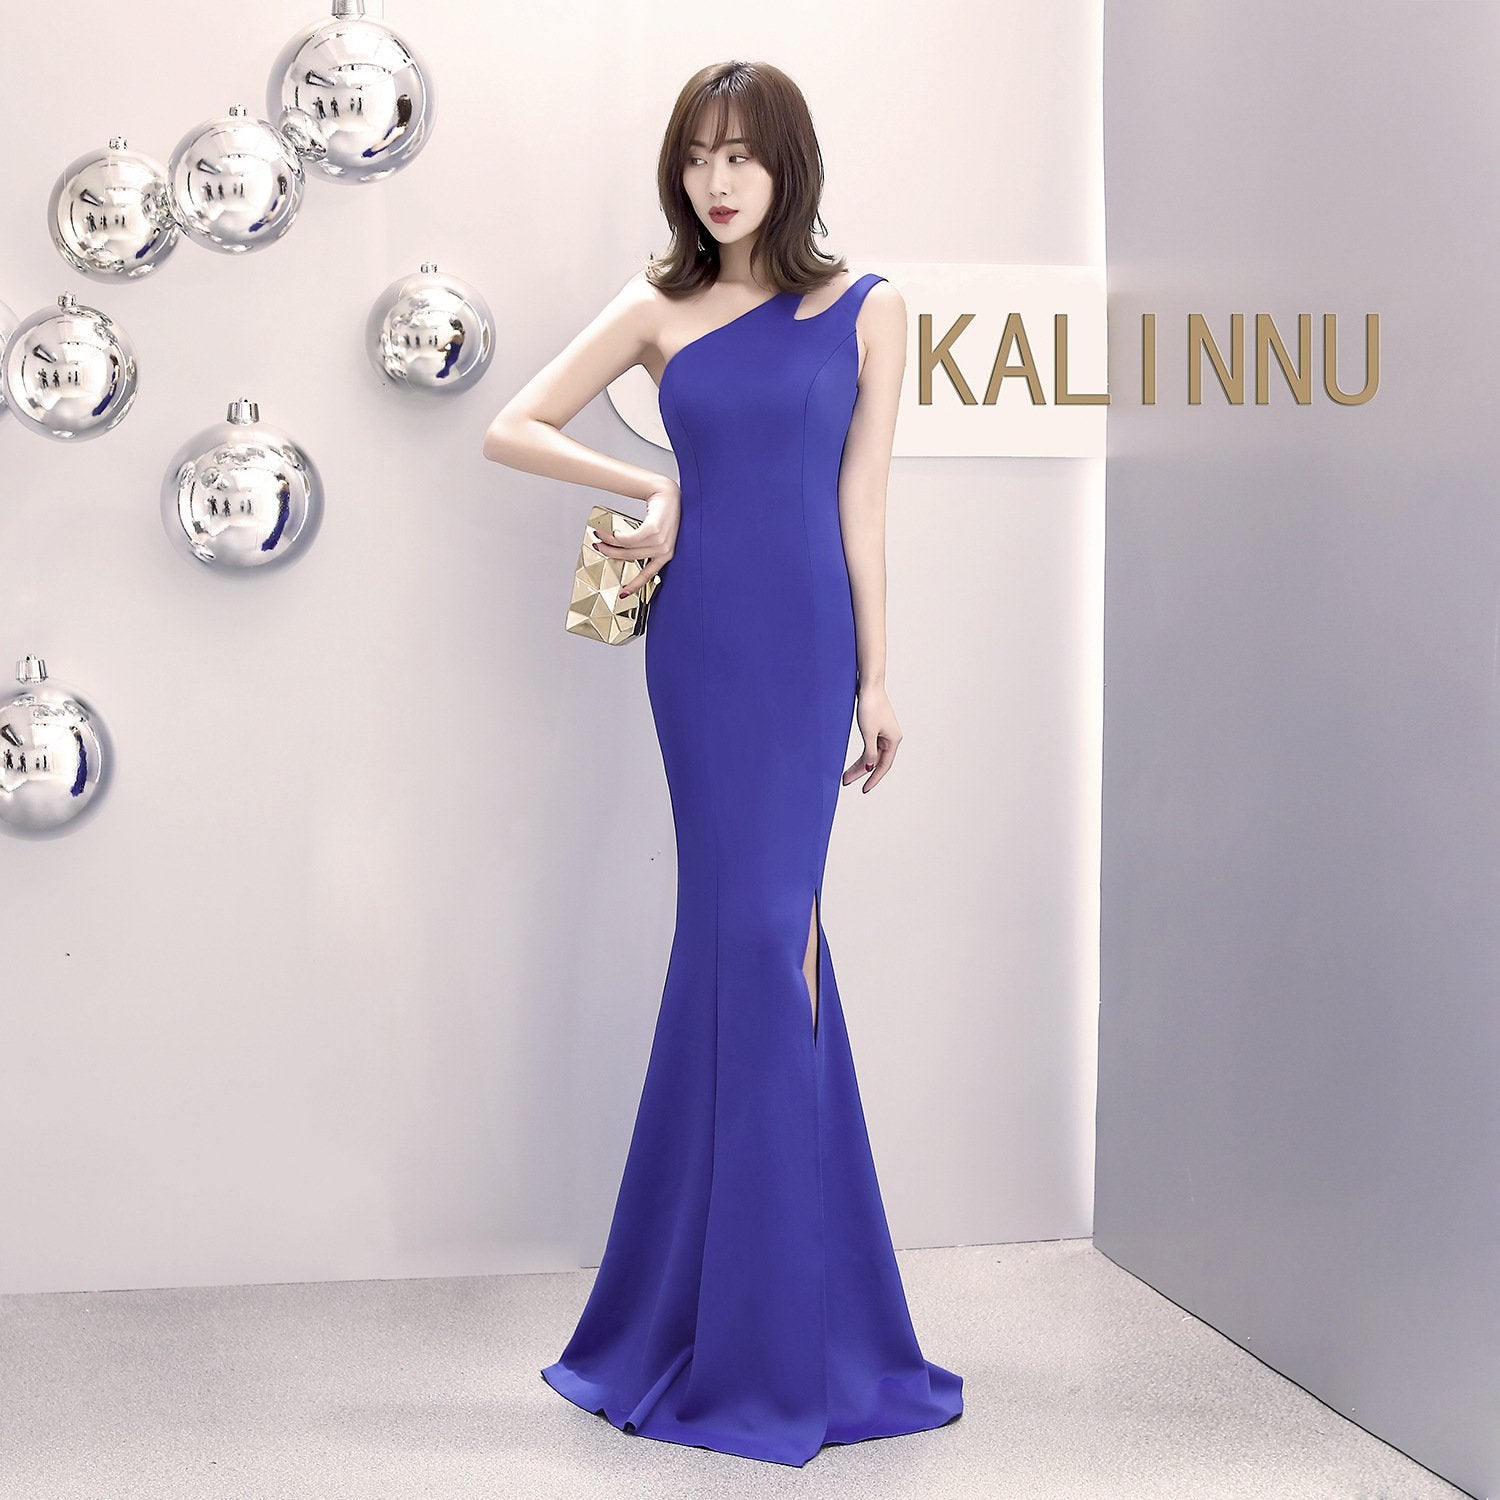 One-shouldered slit fishtail dress - Urunigi.com